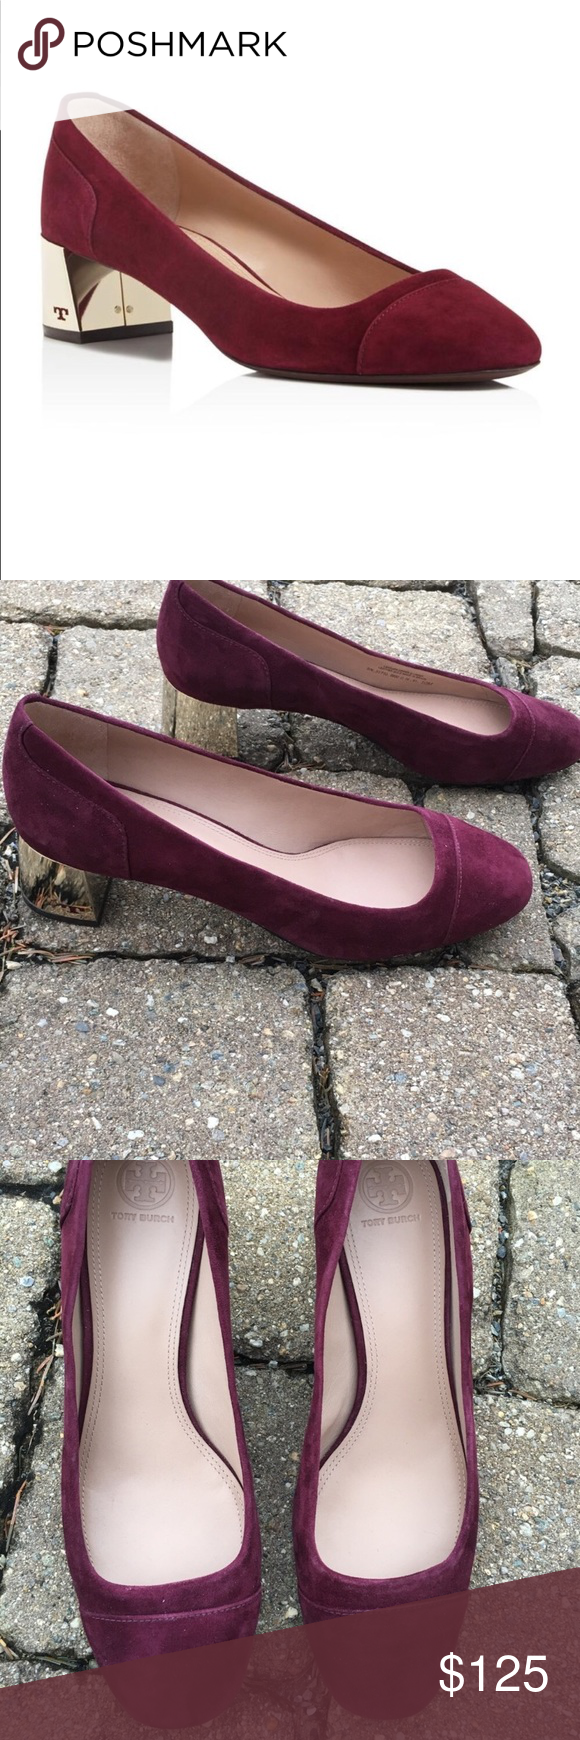 1a7c147079d Tory Burch Evelyn with Suede Block Heel Tory Burch Evelyn with Suede Block  Heel in Excellent Like New Condition. Port wine color Tory Burch Shoes Heels